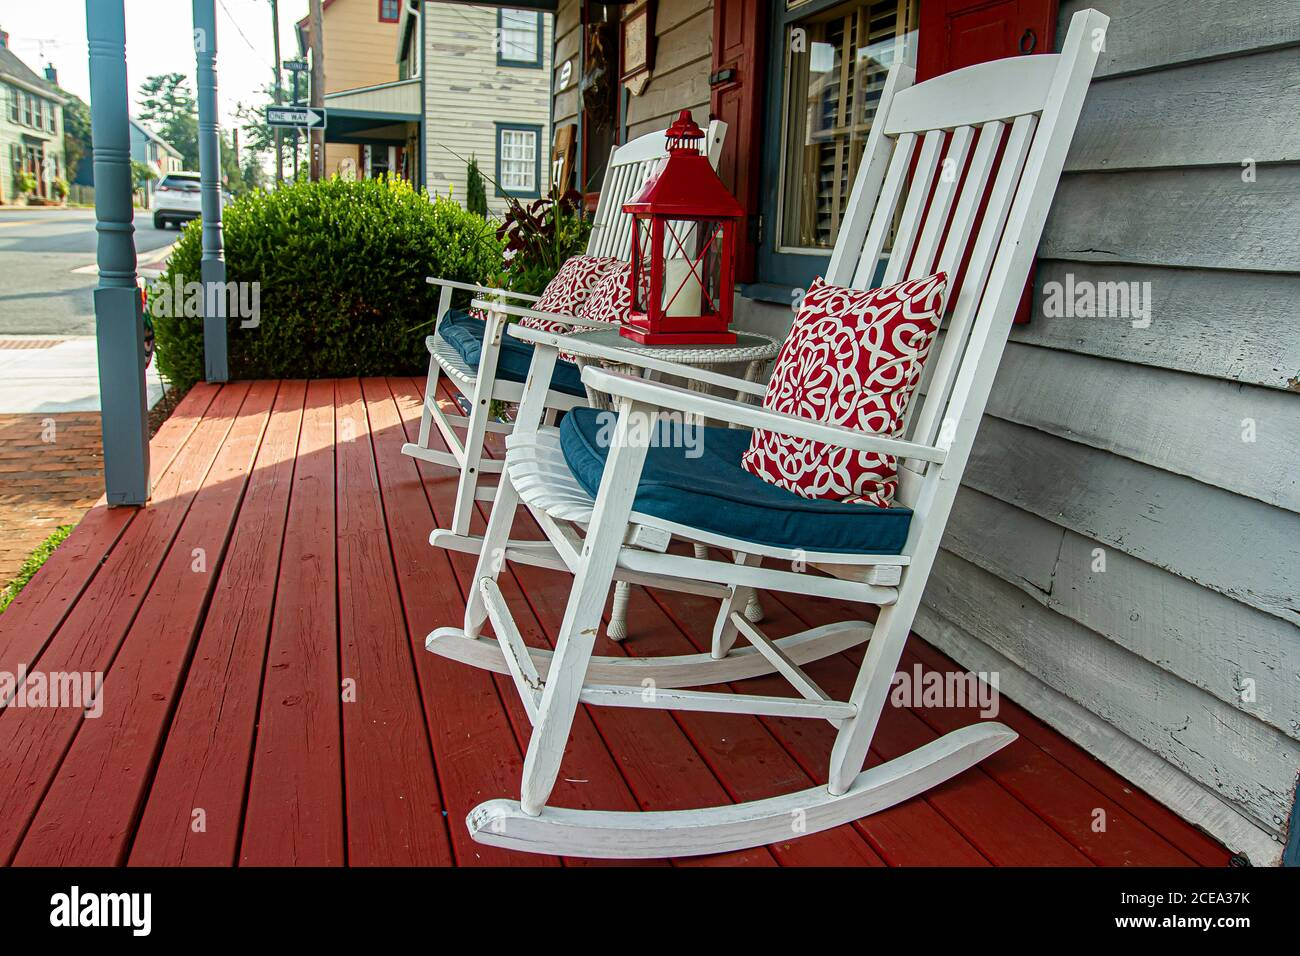 Chesapeake City, MD, USA 08/25/2020: Close up image of two white wooden traditional rocking chairs on a red painted porch of a 19th century American h Stock Photo